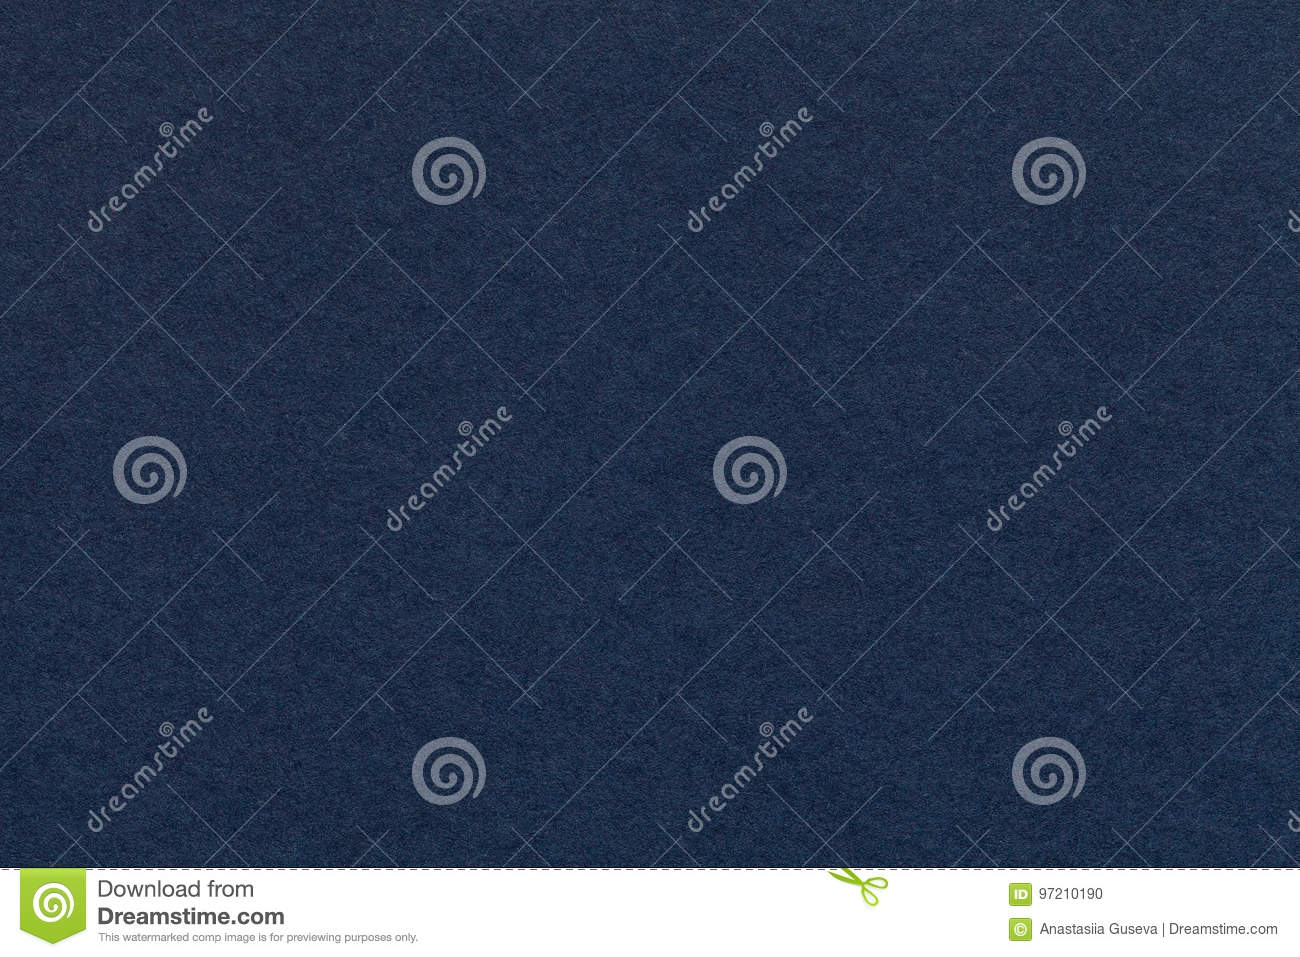 Texture of old navy blue paper closeup. Structure of a dense cardboard. The denim background.